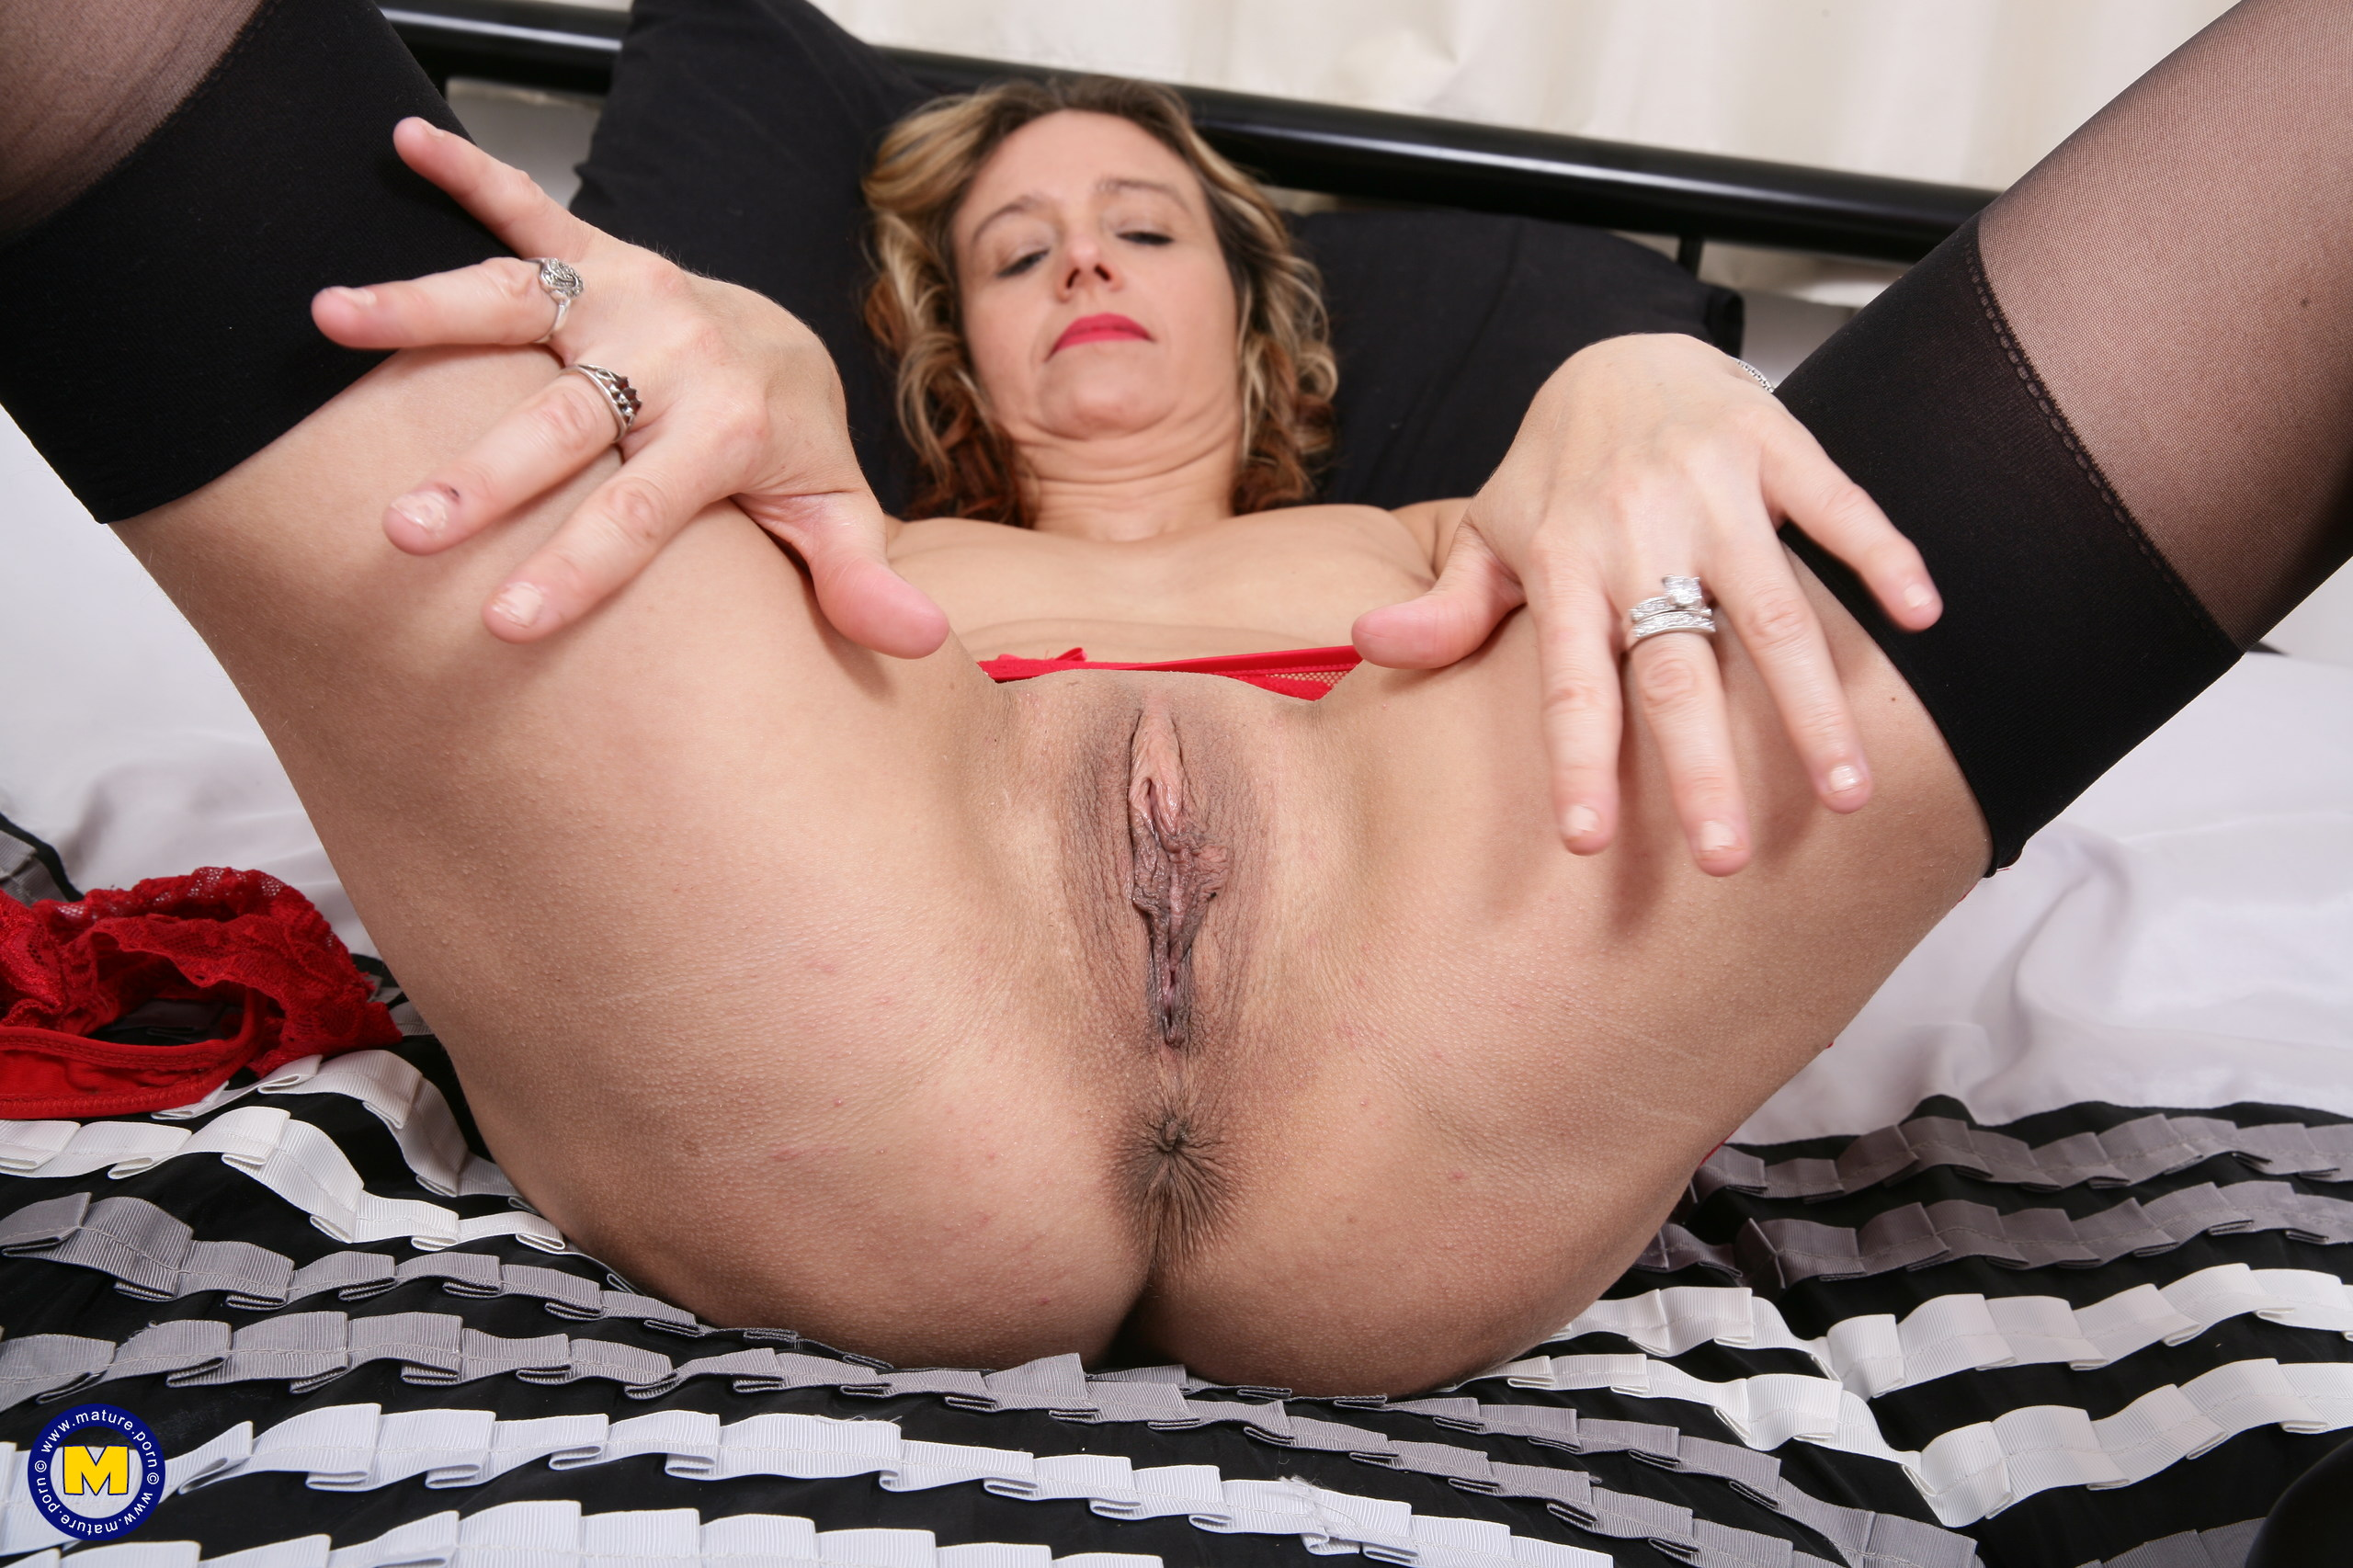 Wild hairless Brit housewife toying with herself